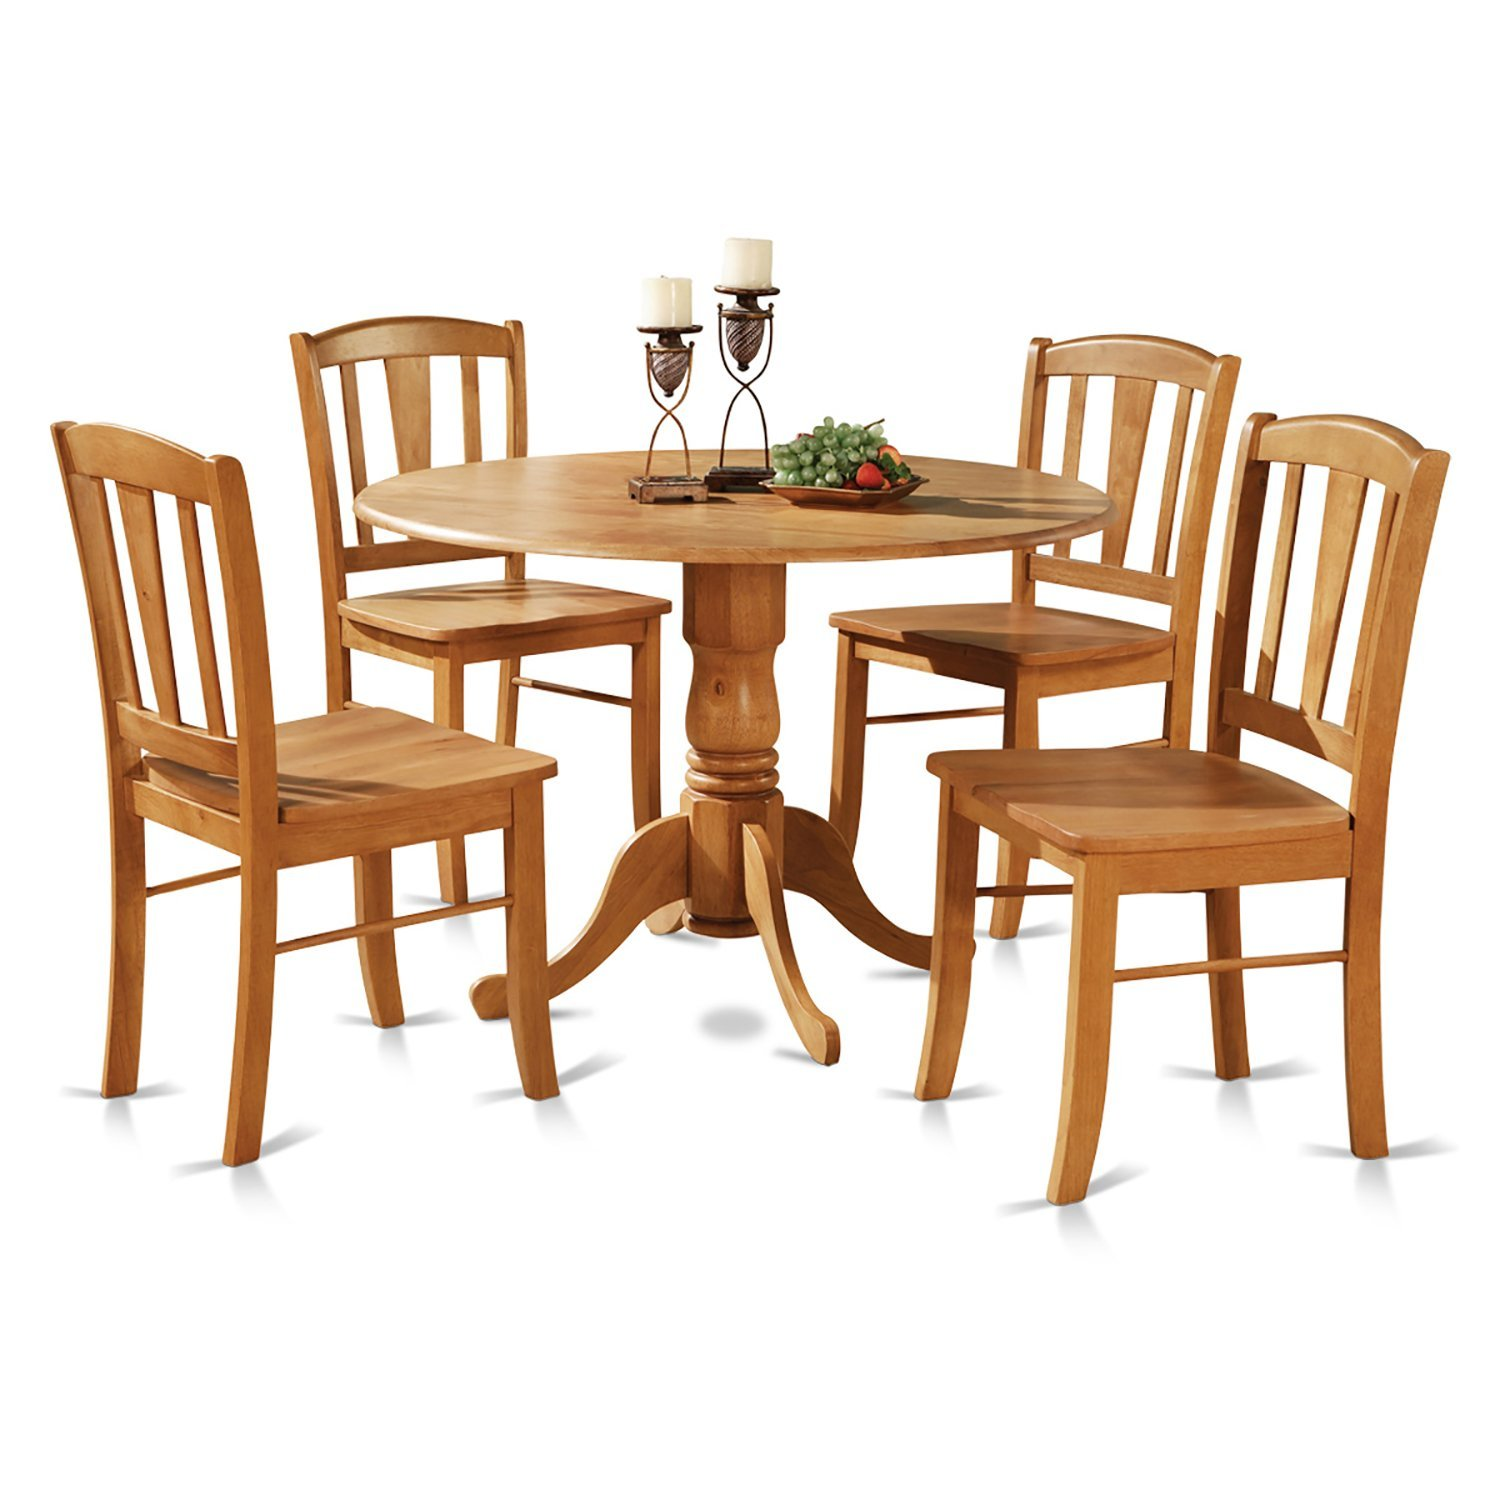 Solid Wood Kitchen Table Sets: 5-Piece Round Kitchen Table And 2 Dinette Chairs Set, Oak